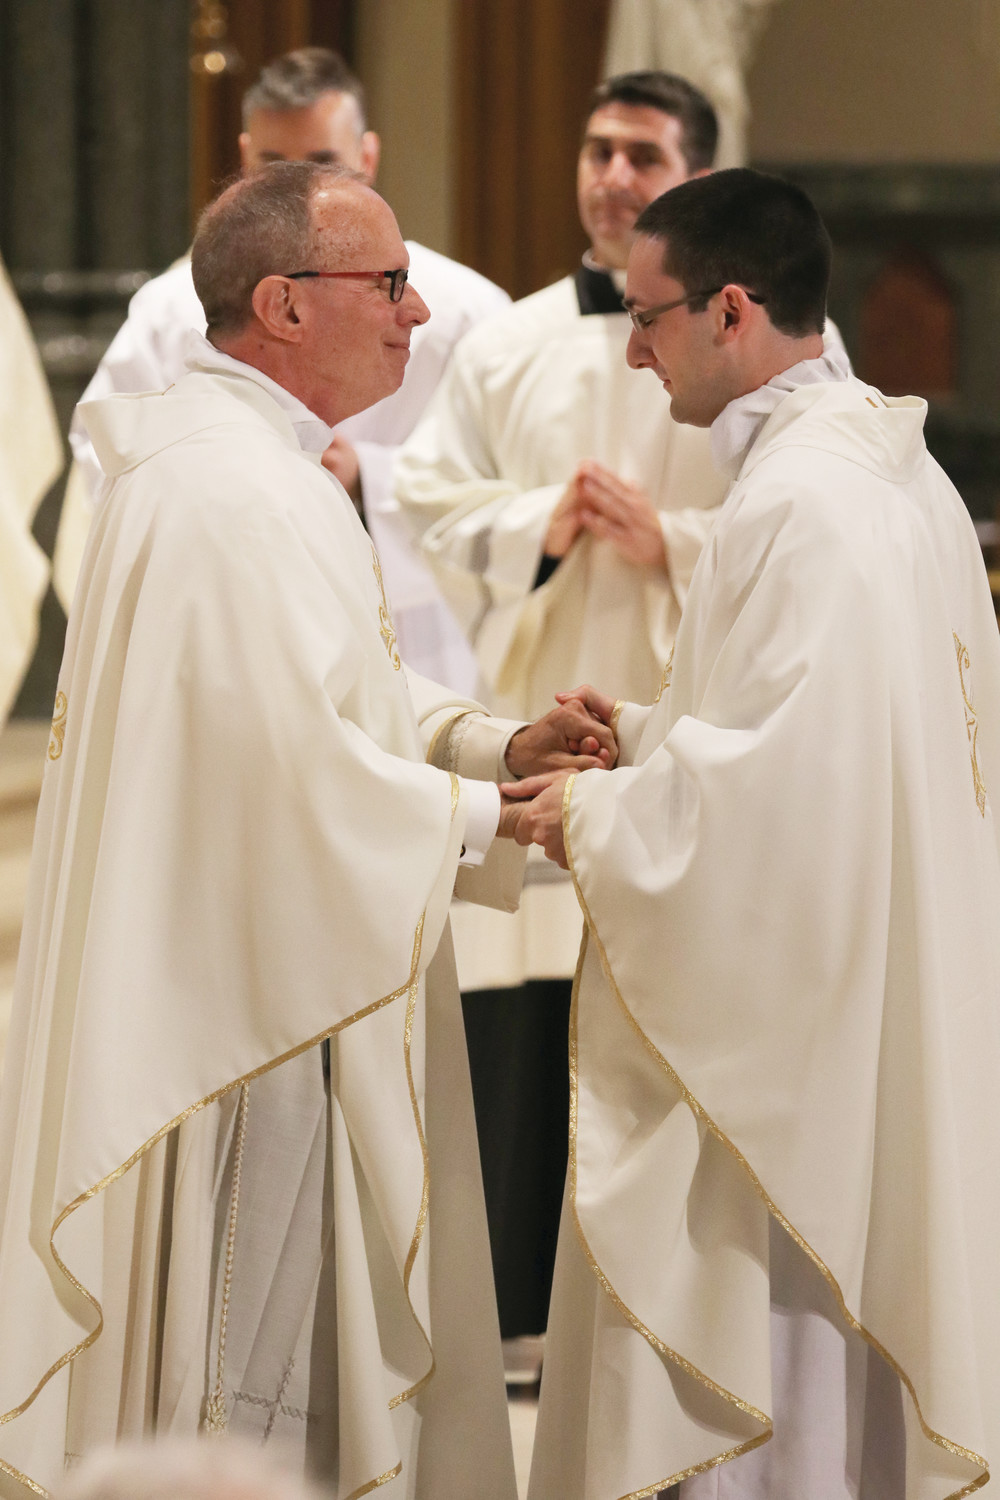 Father Henry Zinno, a mentor to Father Dufour as pastor of his parish of Our Lady of Mount Carmel in Bristol, congratulates the new priest after vesting him.